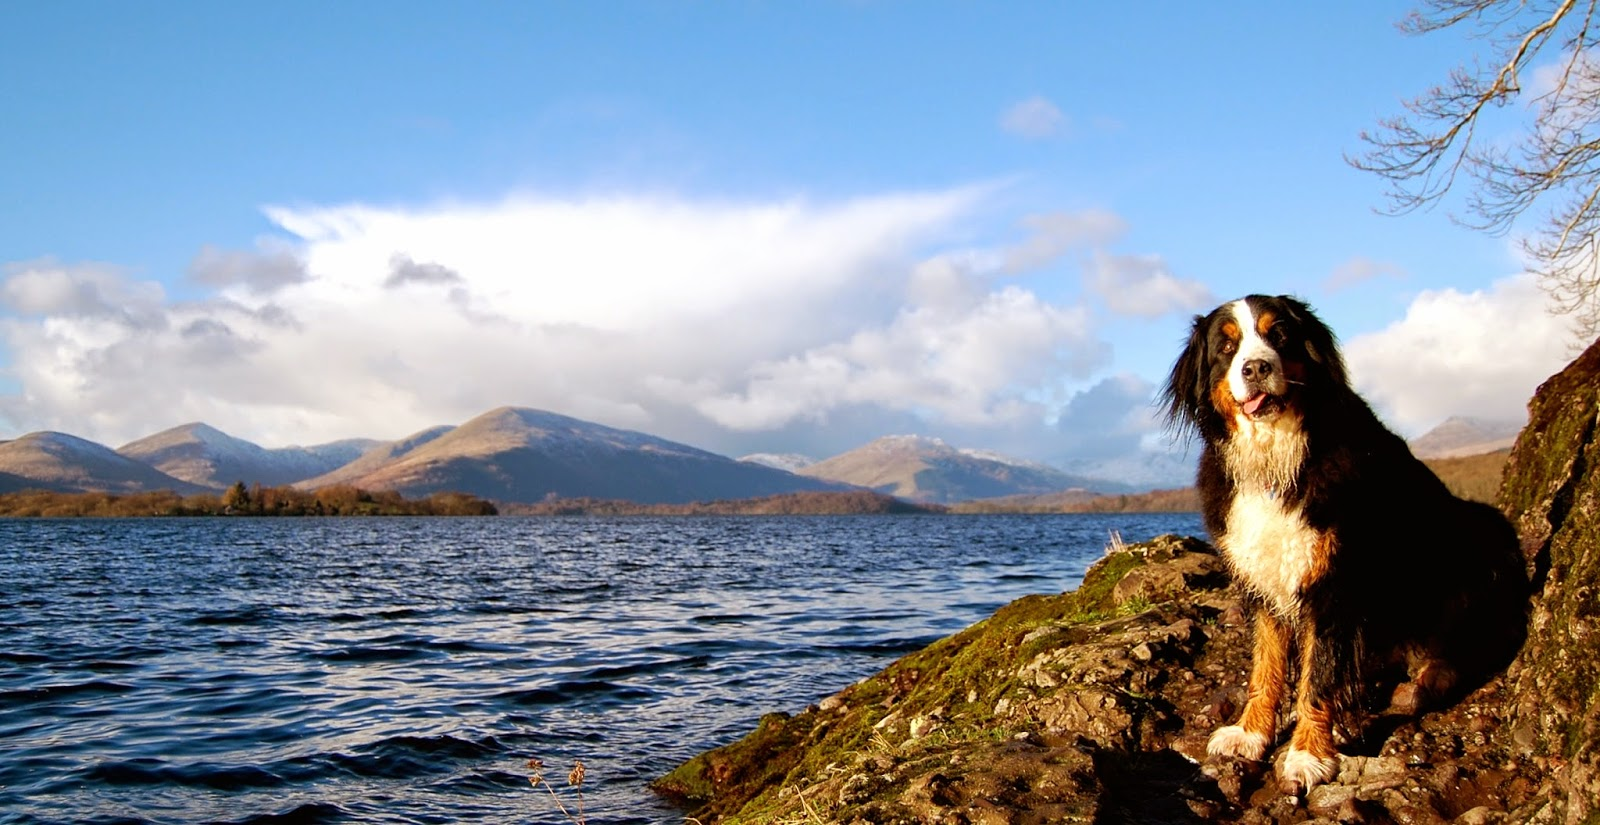 Mattie on the Banks of Loch Lomond